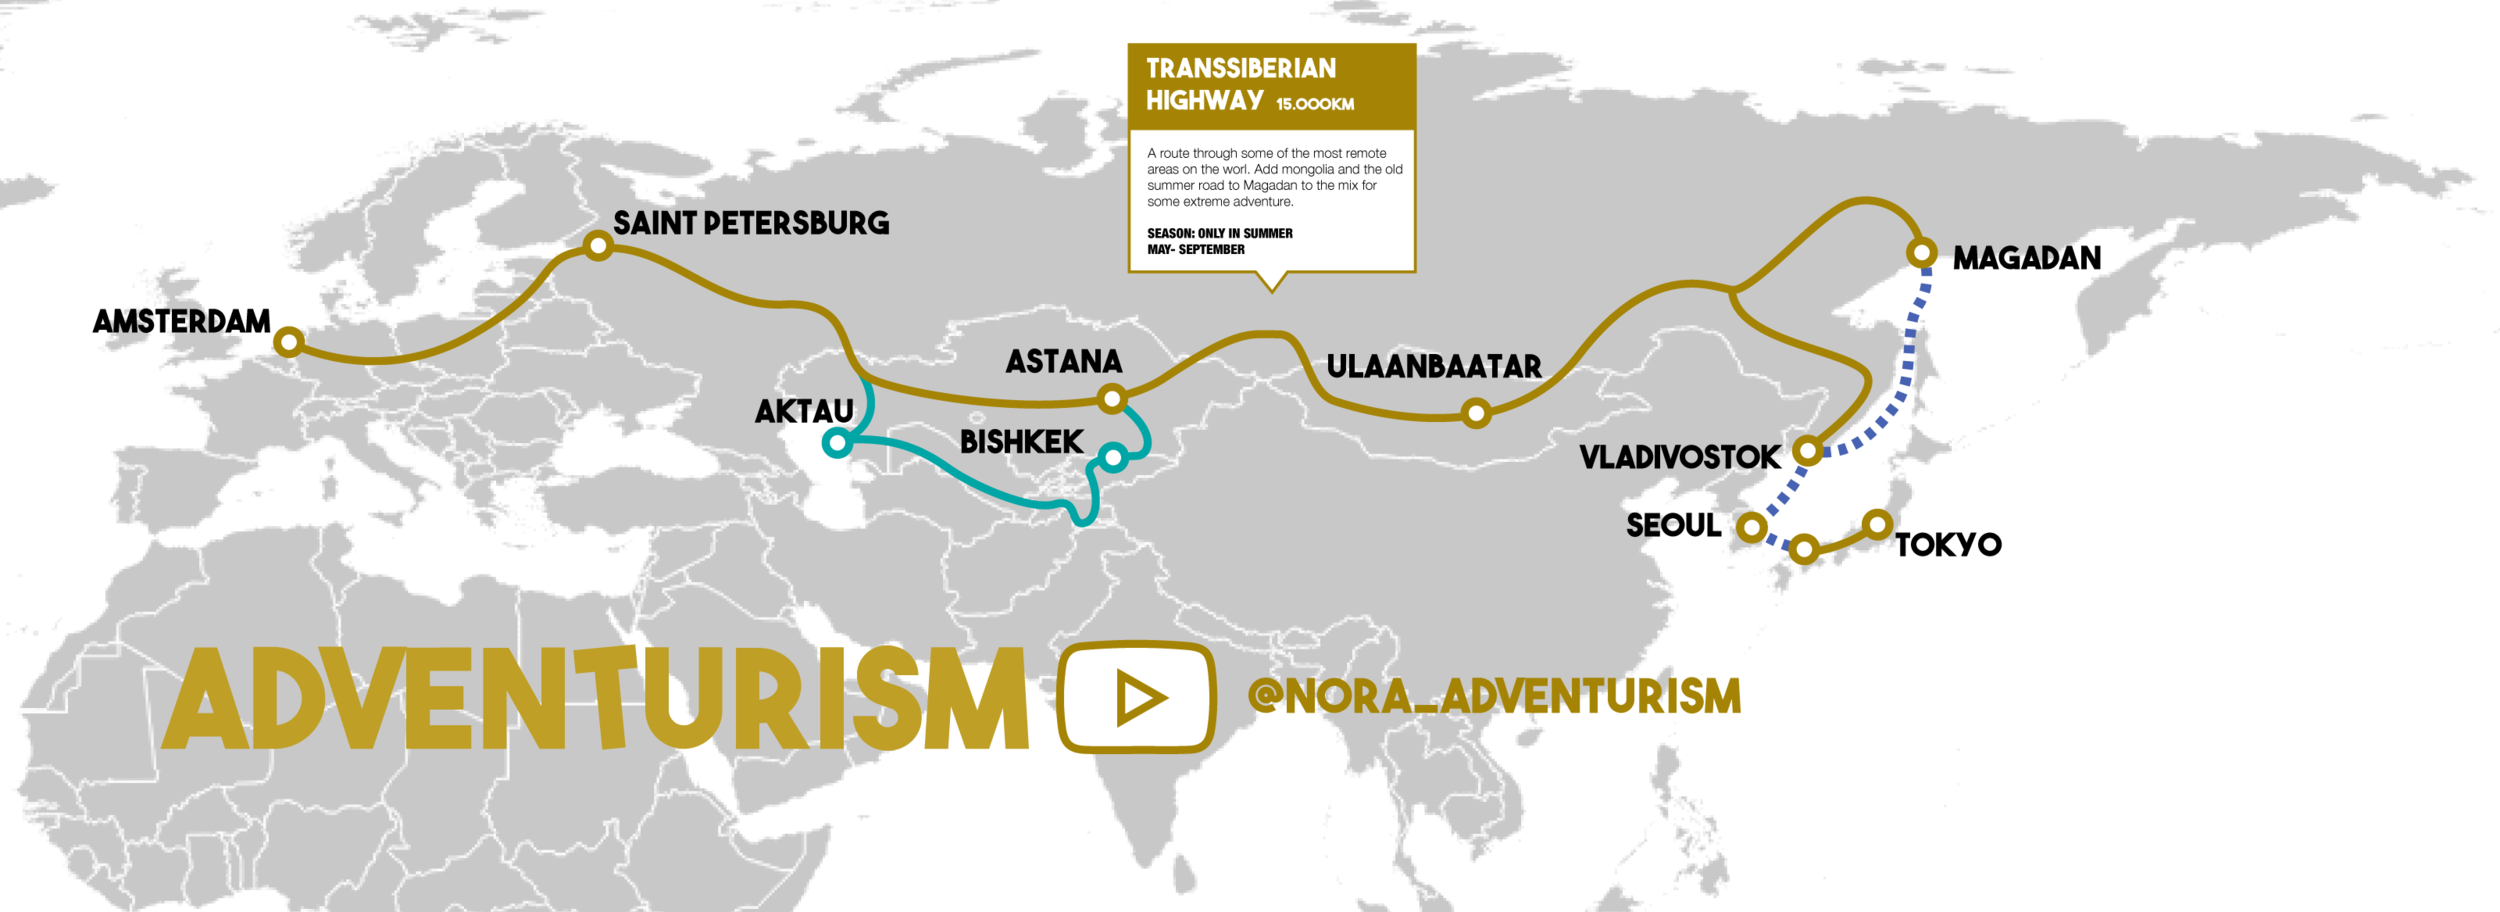 The route that follows the Trans-Siberian express.